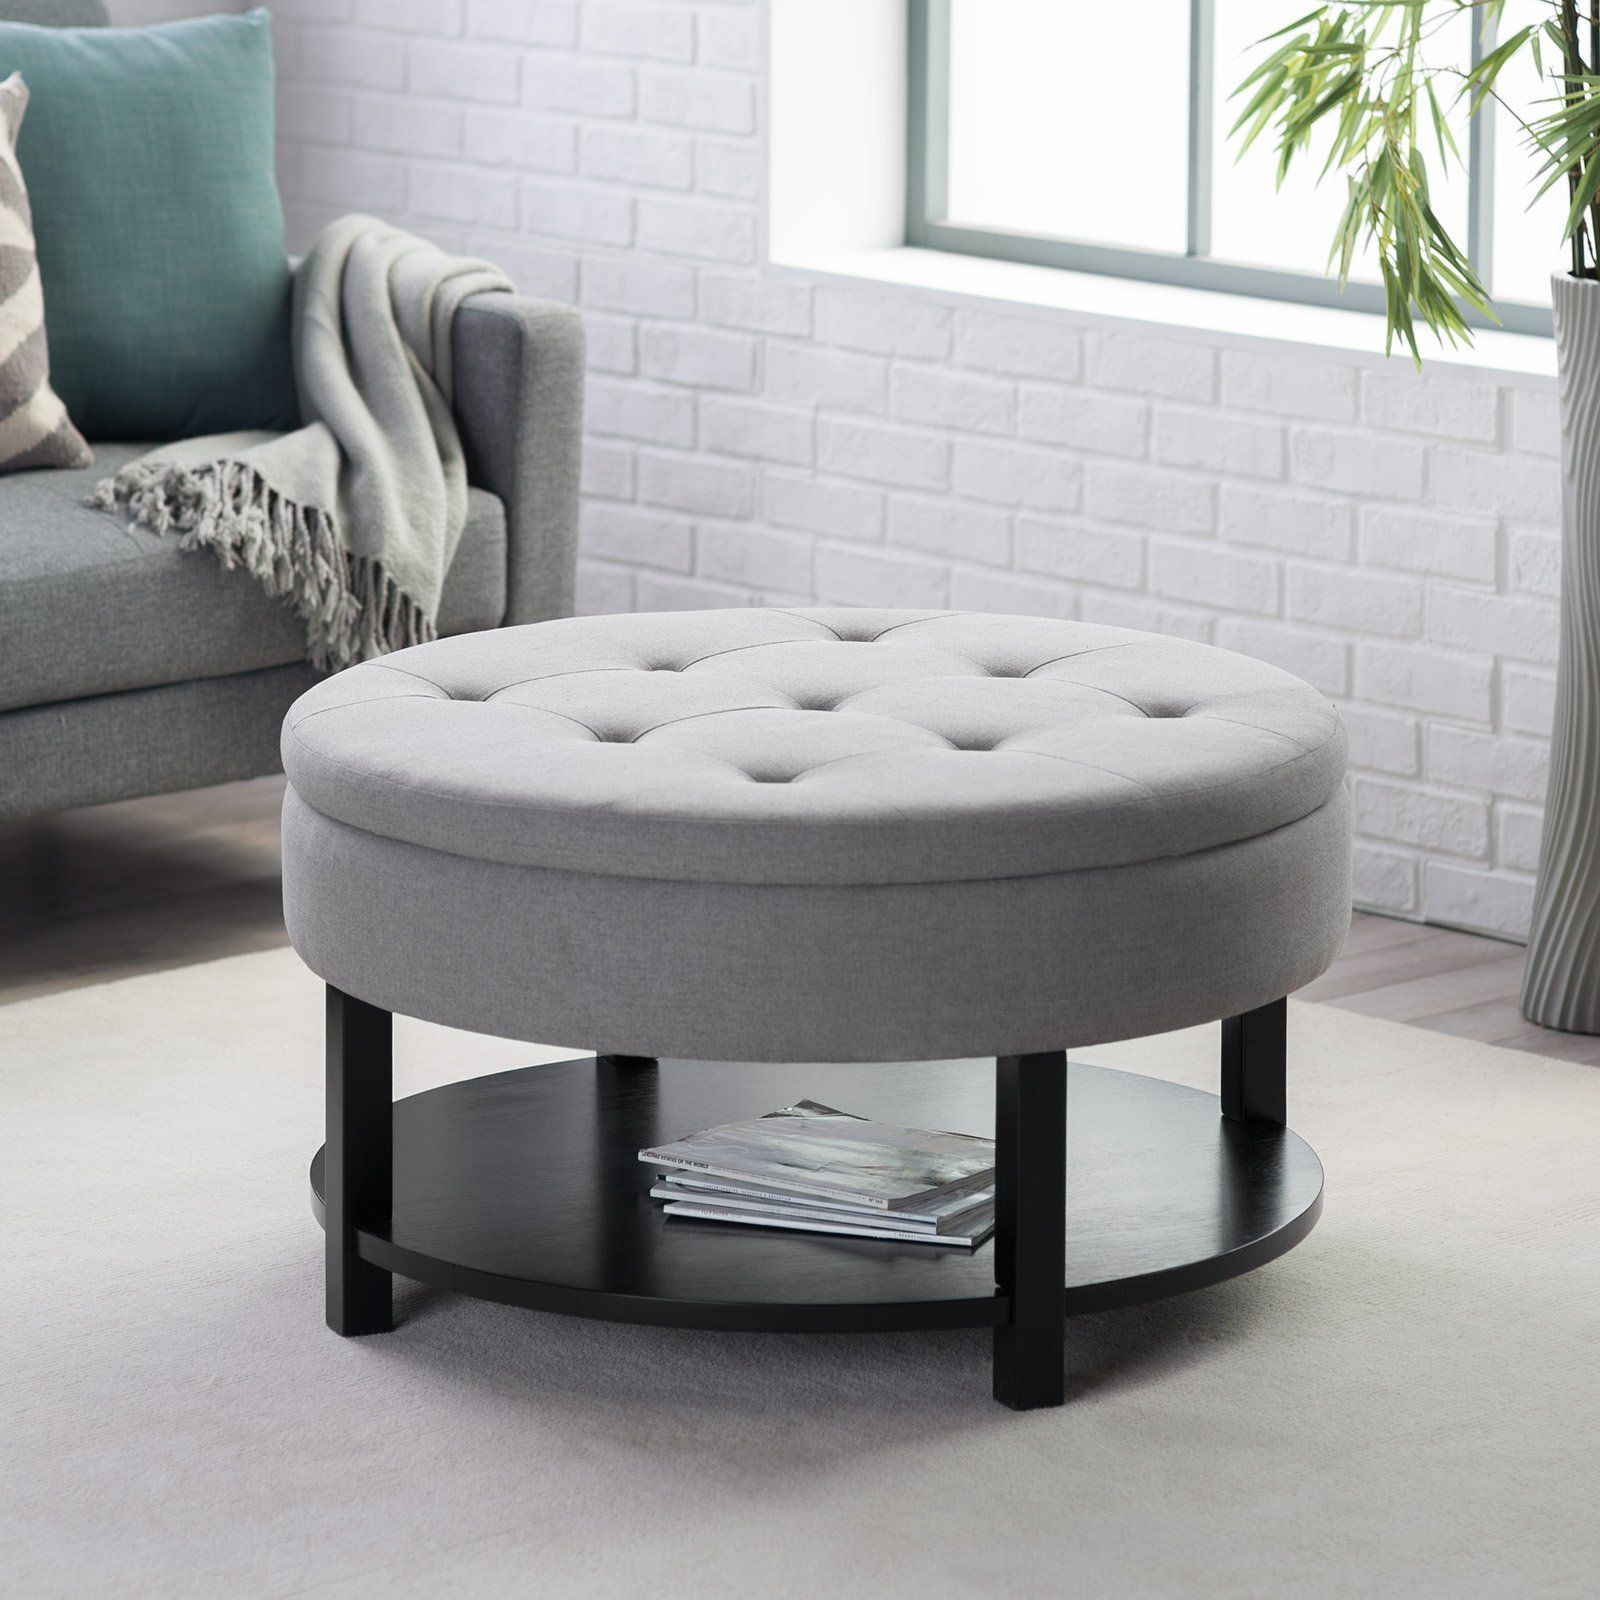 Ottoman Belham Living Dalton Coffee Table Round Tufted Storage With Tray Shelf Ottomans At Hayneedle